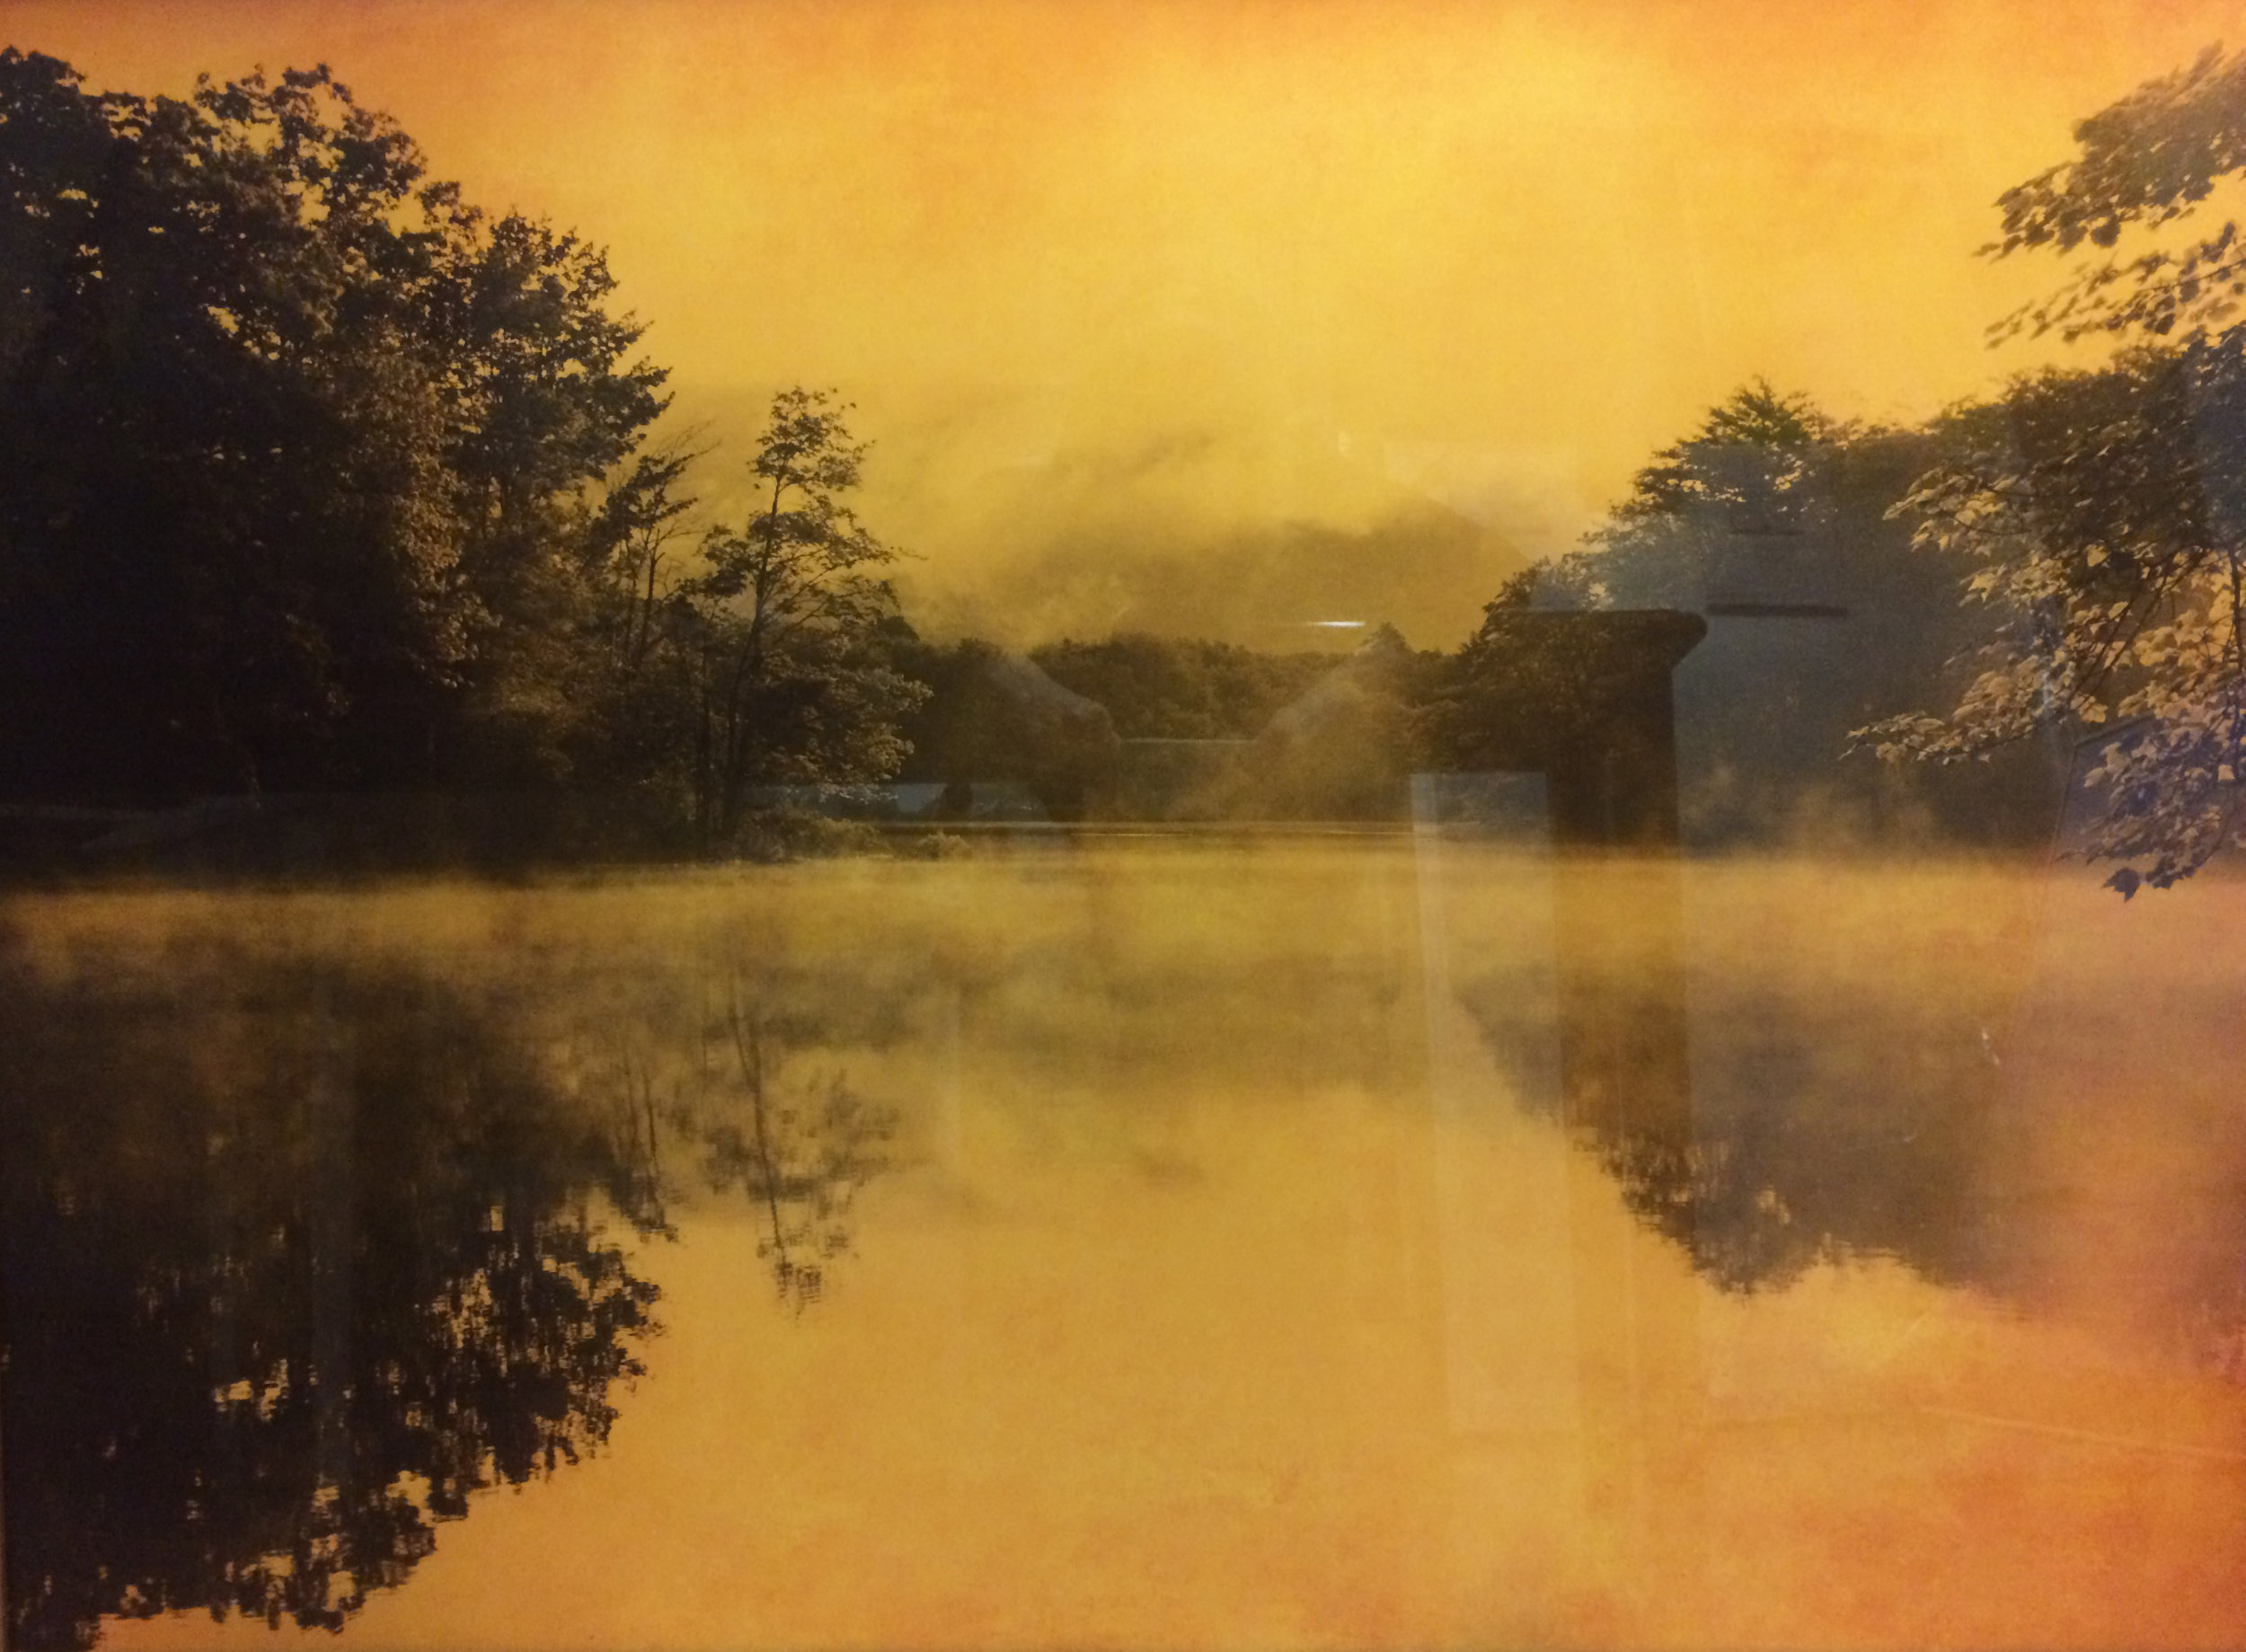 Joyce Tenneson,  Megunticook 6AM , 2011, Gold mixed media on plexiglass, 30h x 40w in. $8,750